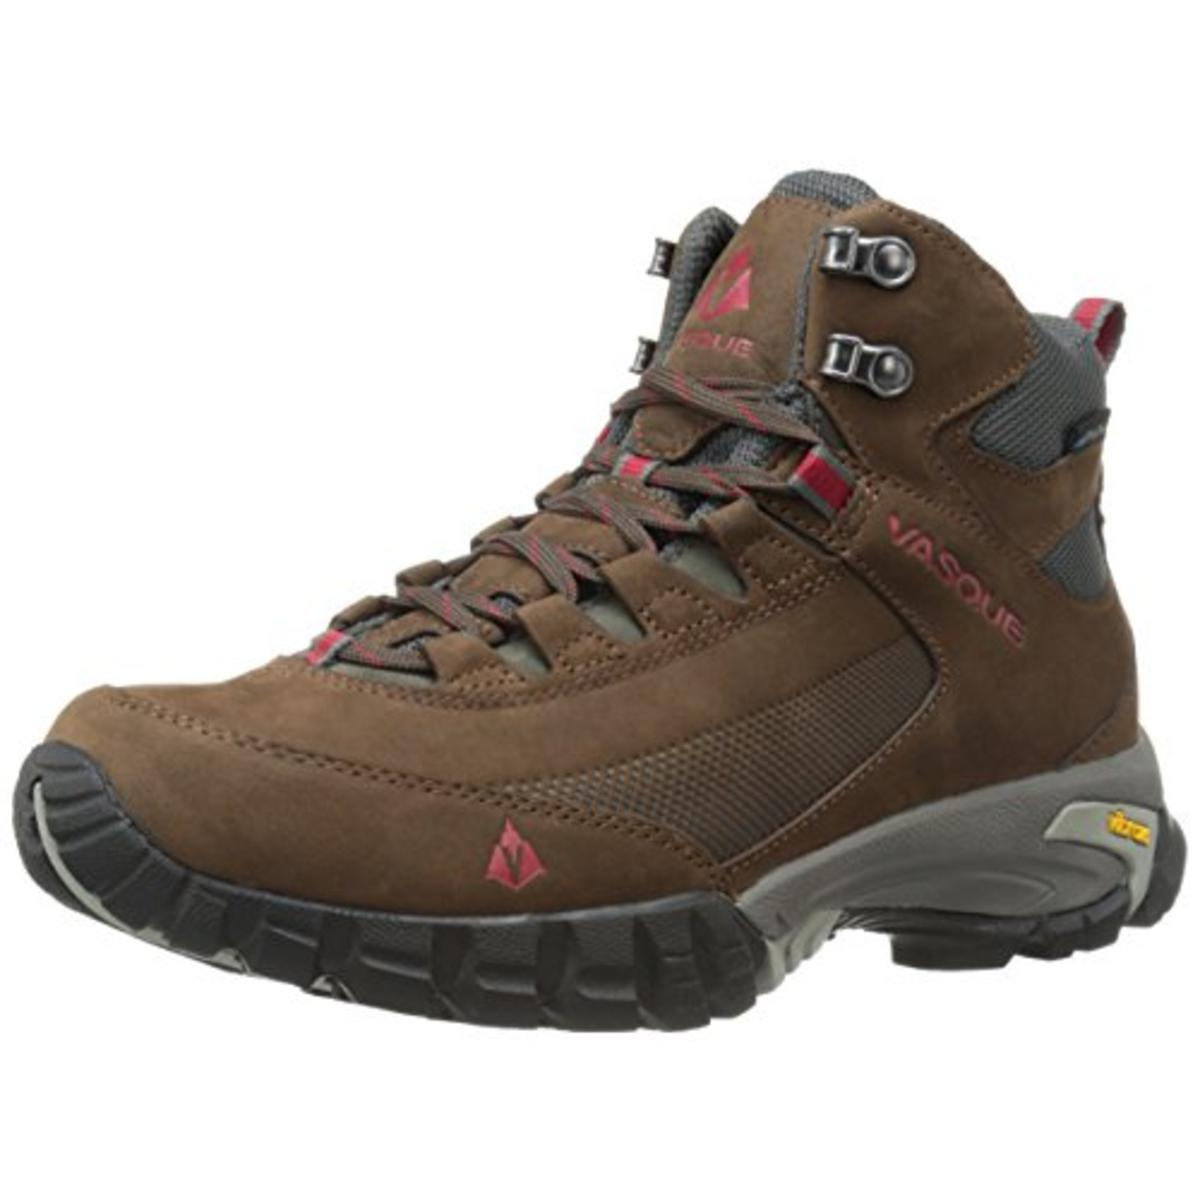 7cc5ddd0624 Vasque Mens Talus Trek Ultradry Leather Waterproof Hiking Boots